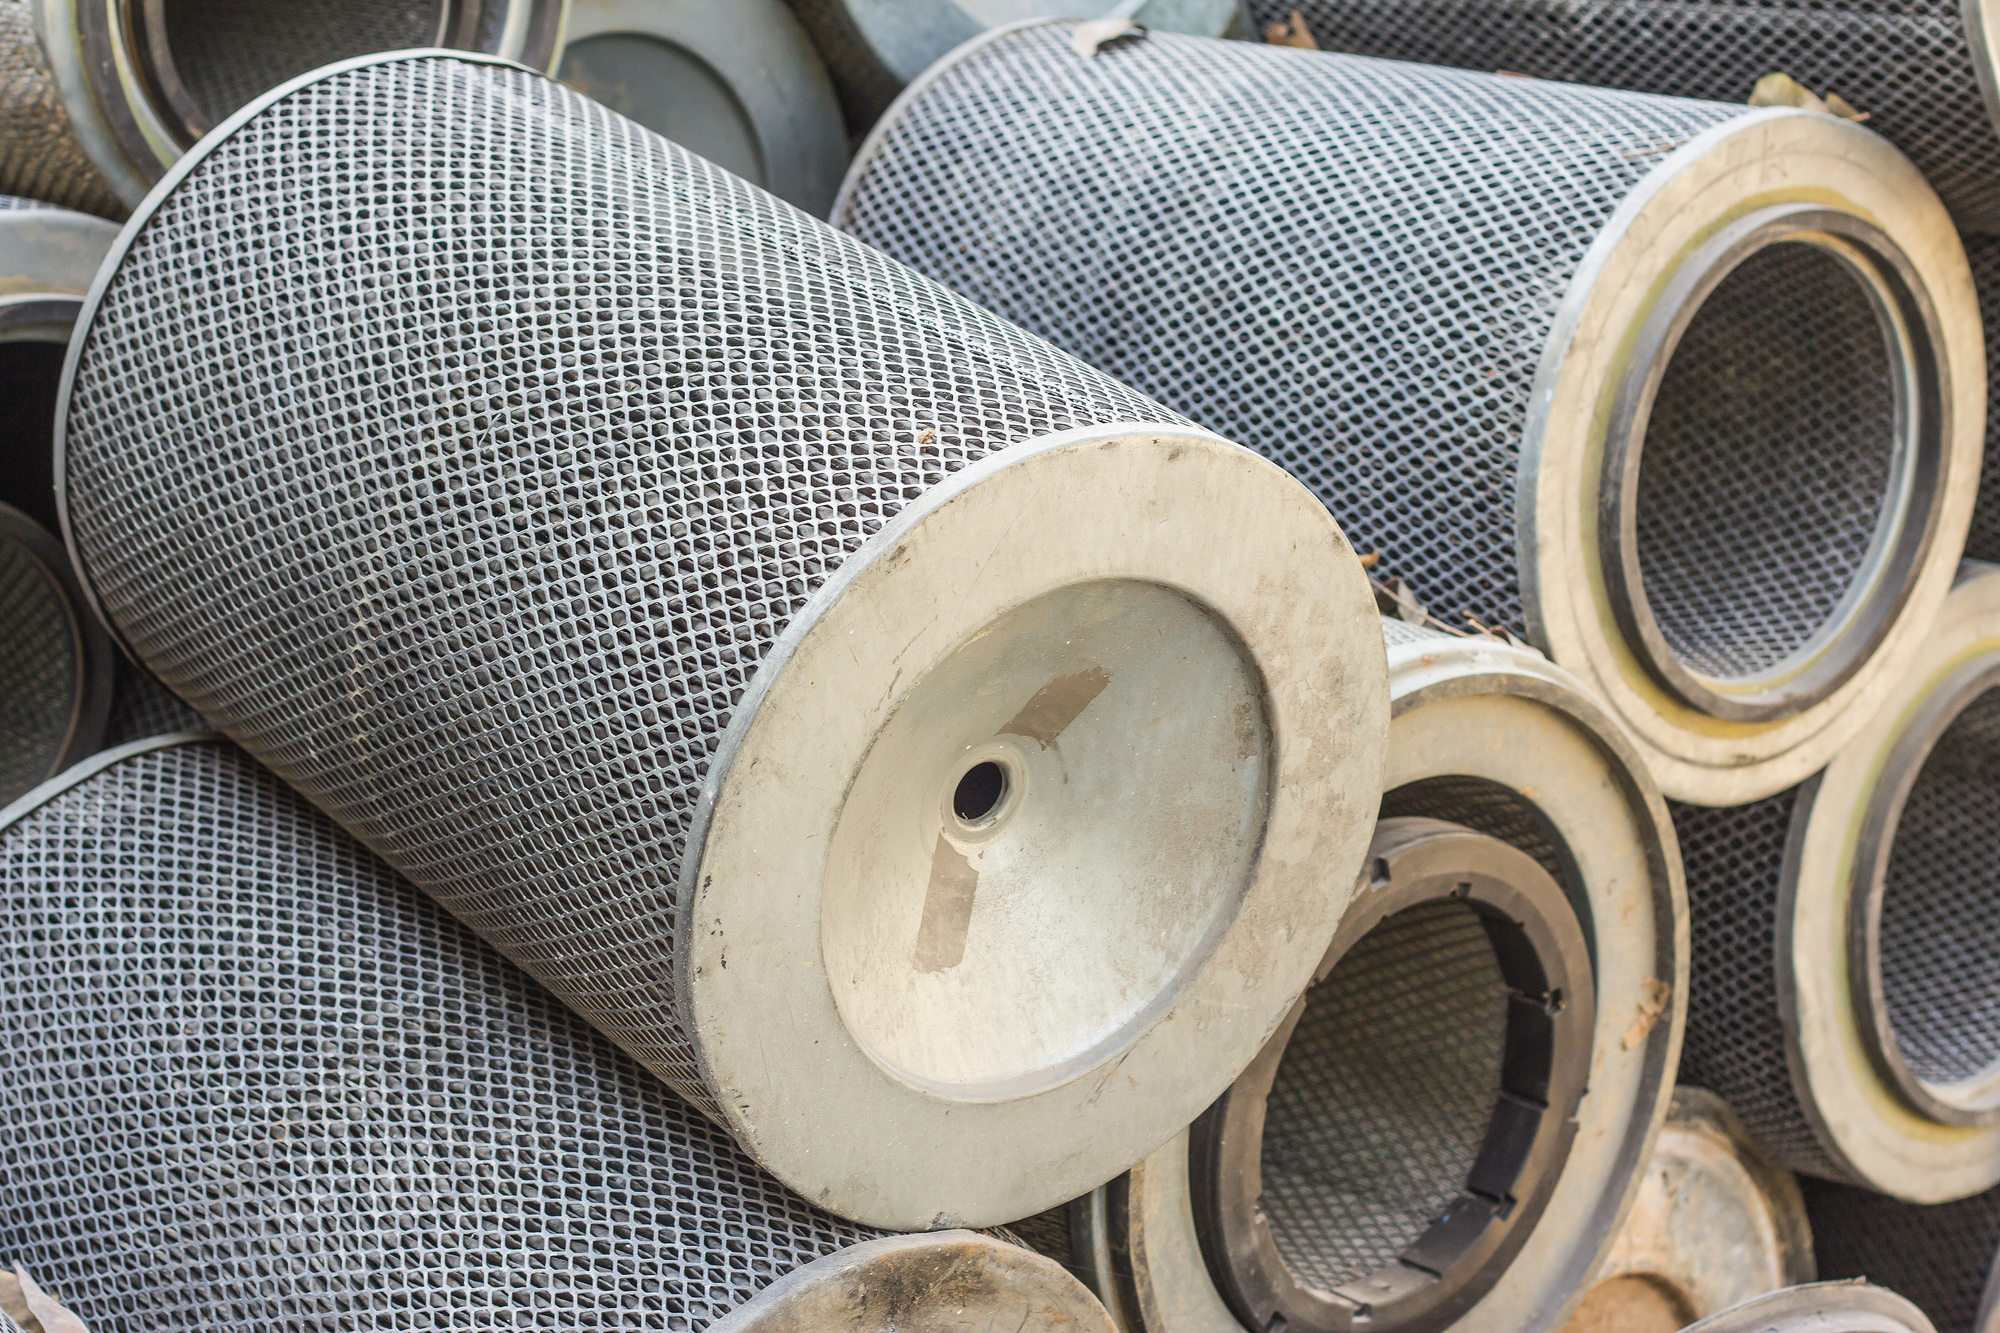 8 Dirty Air Filter Symptoms: How to Know When to Clean Your Air